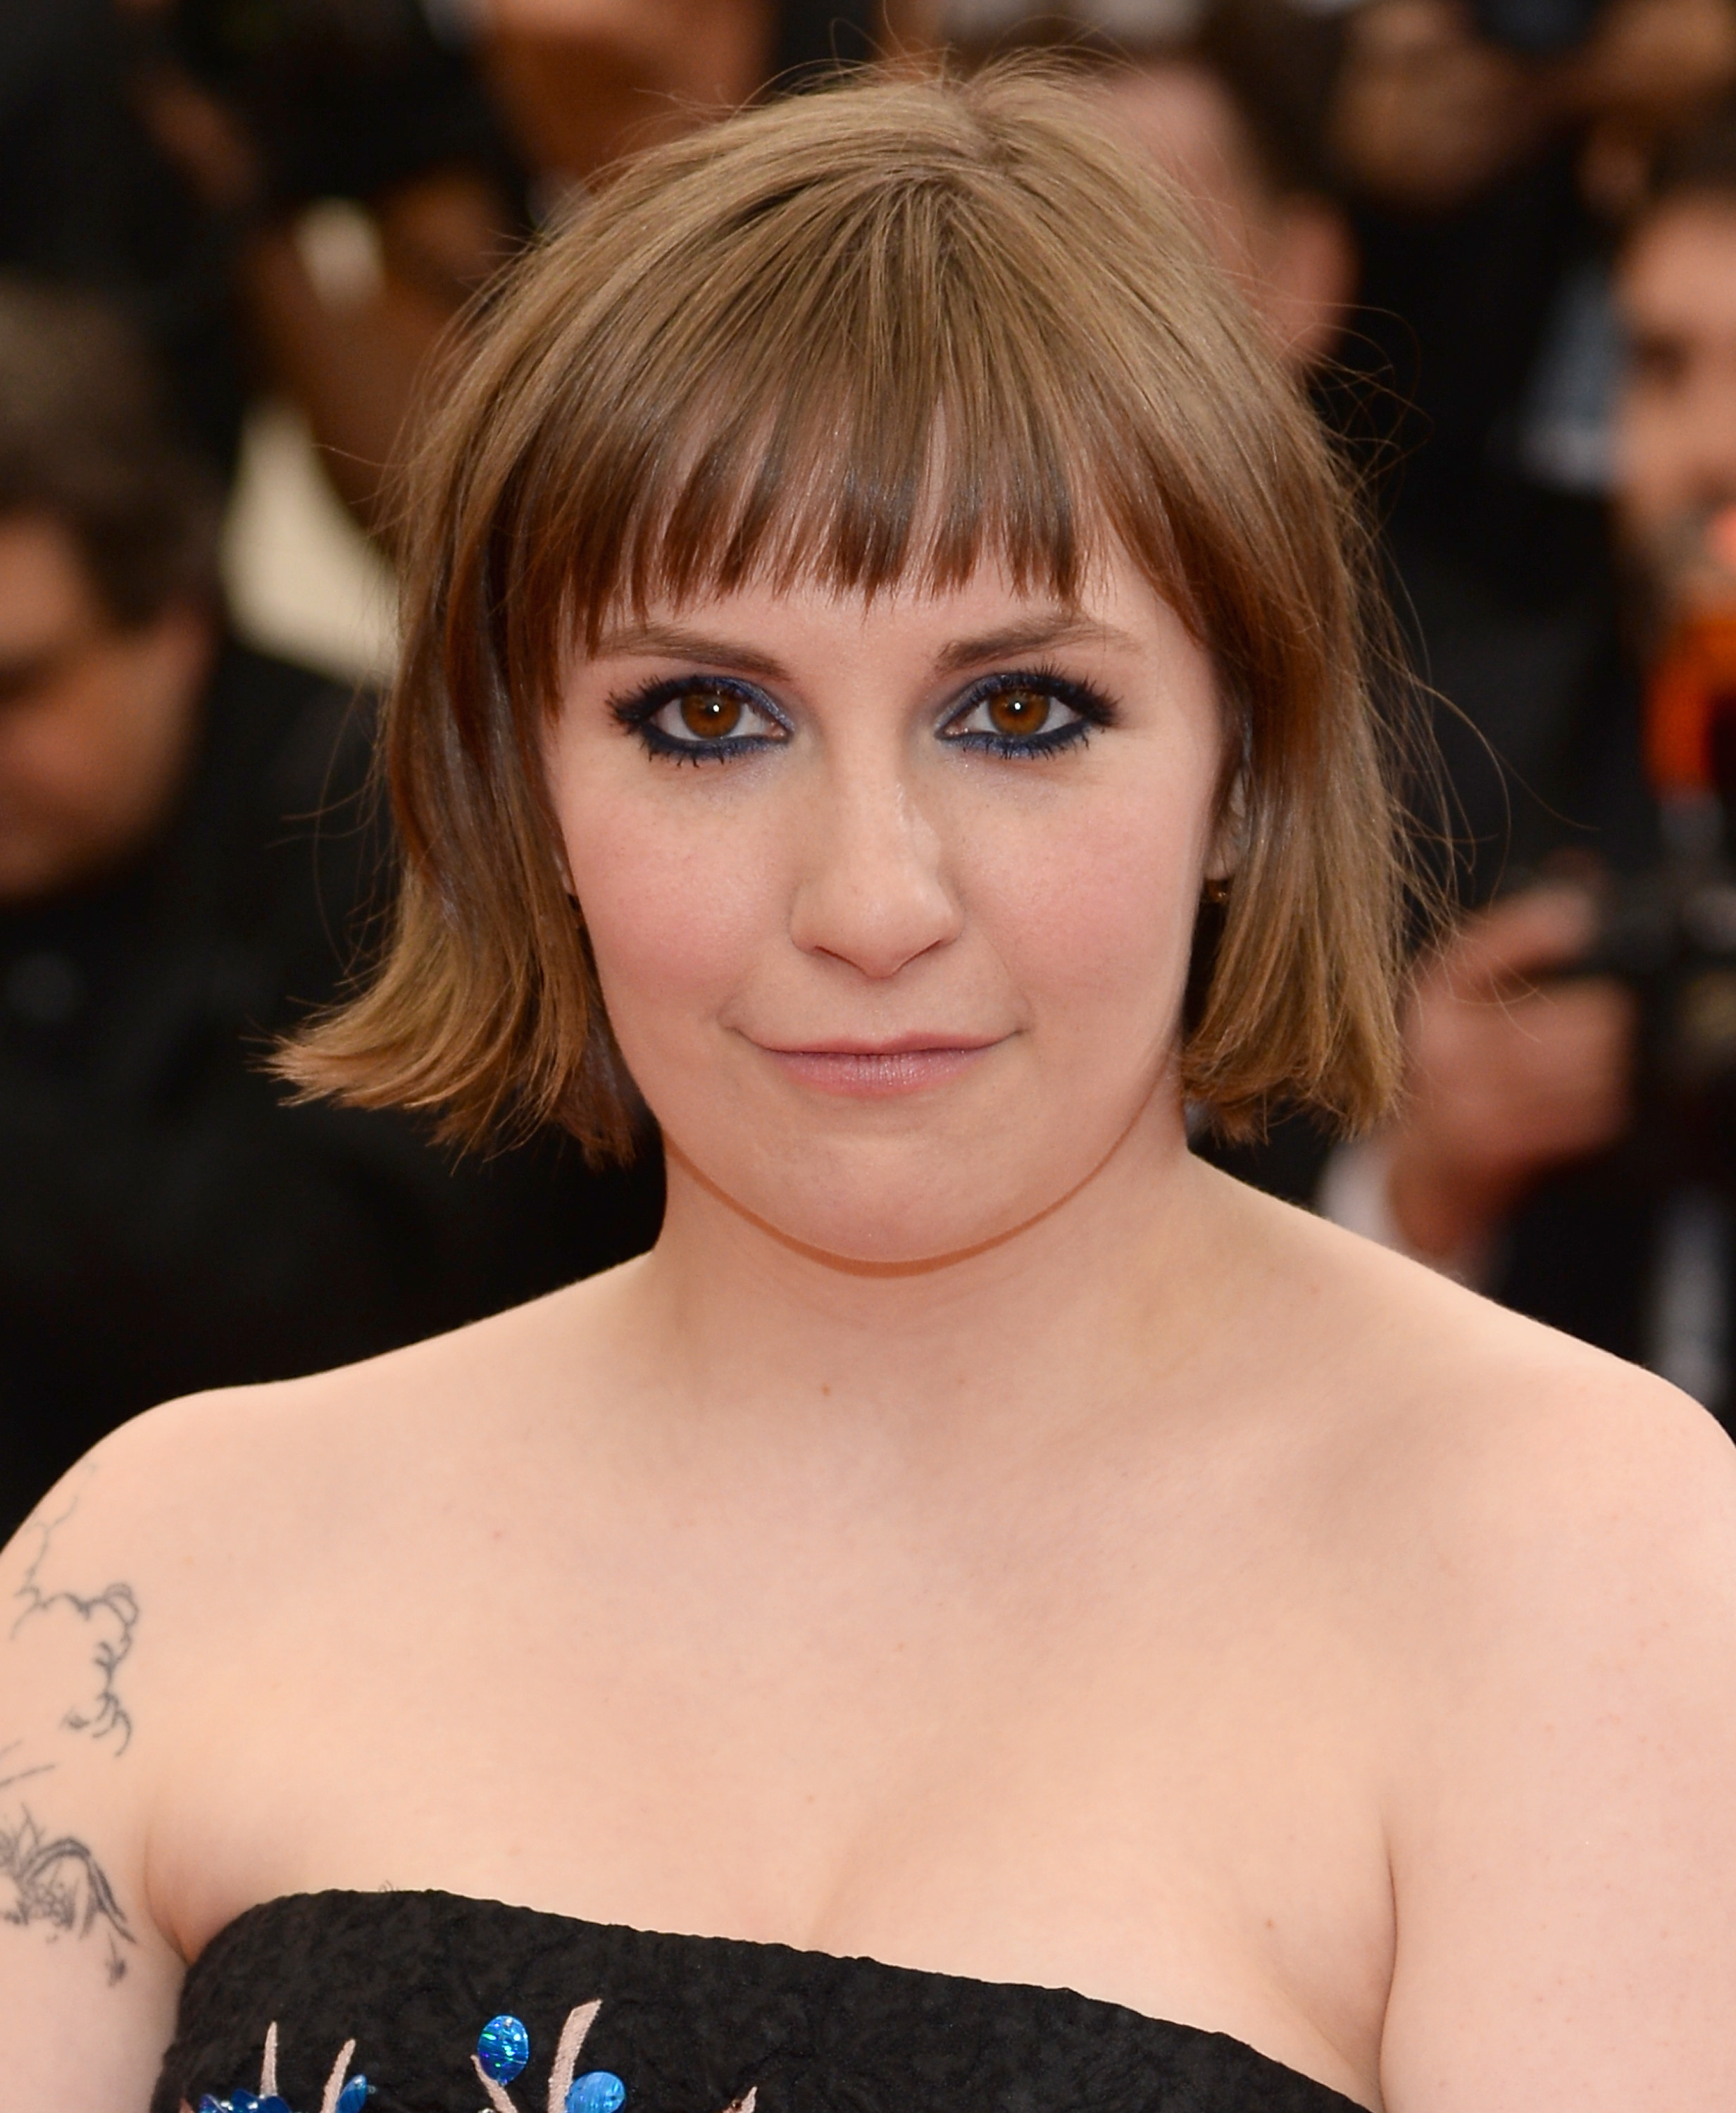 Lena Dunham attends the  Charles James: Beyond Fashion  Costume Institute Gala at the Metropolitan Museum of Art on May 5, 2014 in New York City.